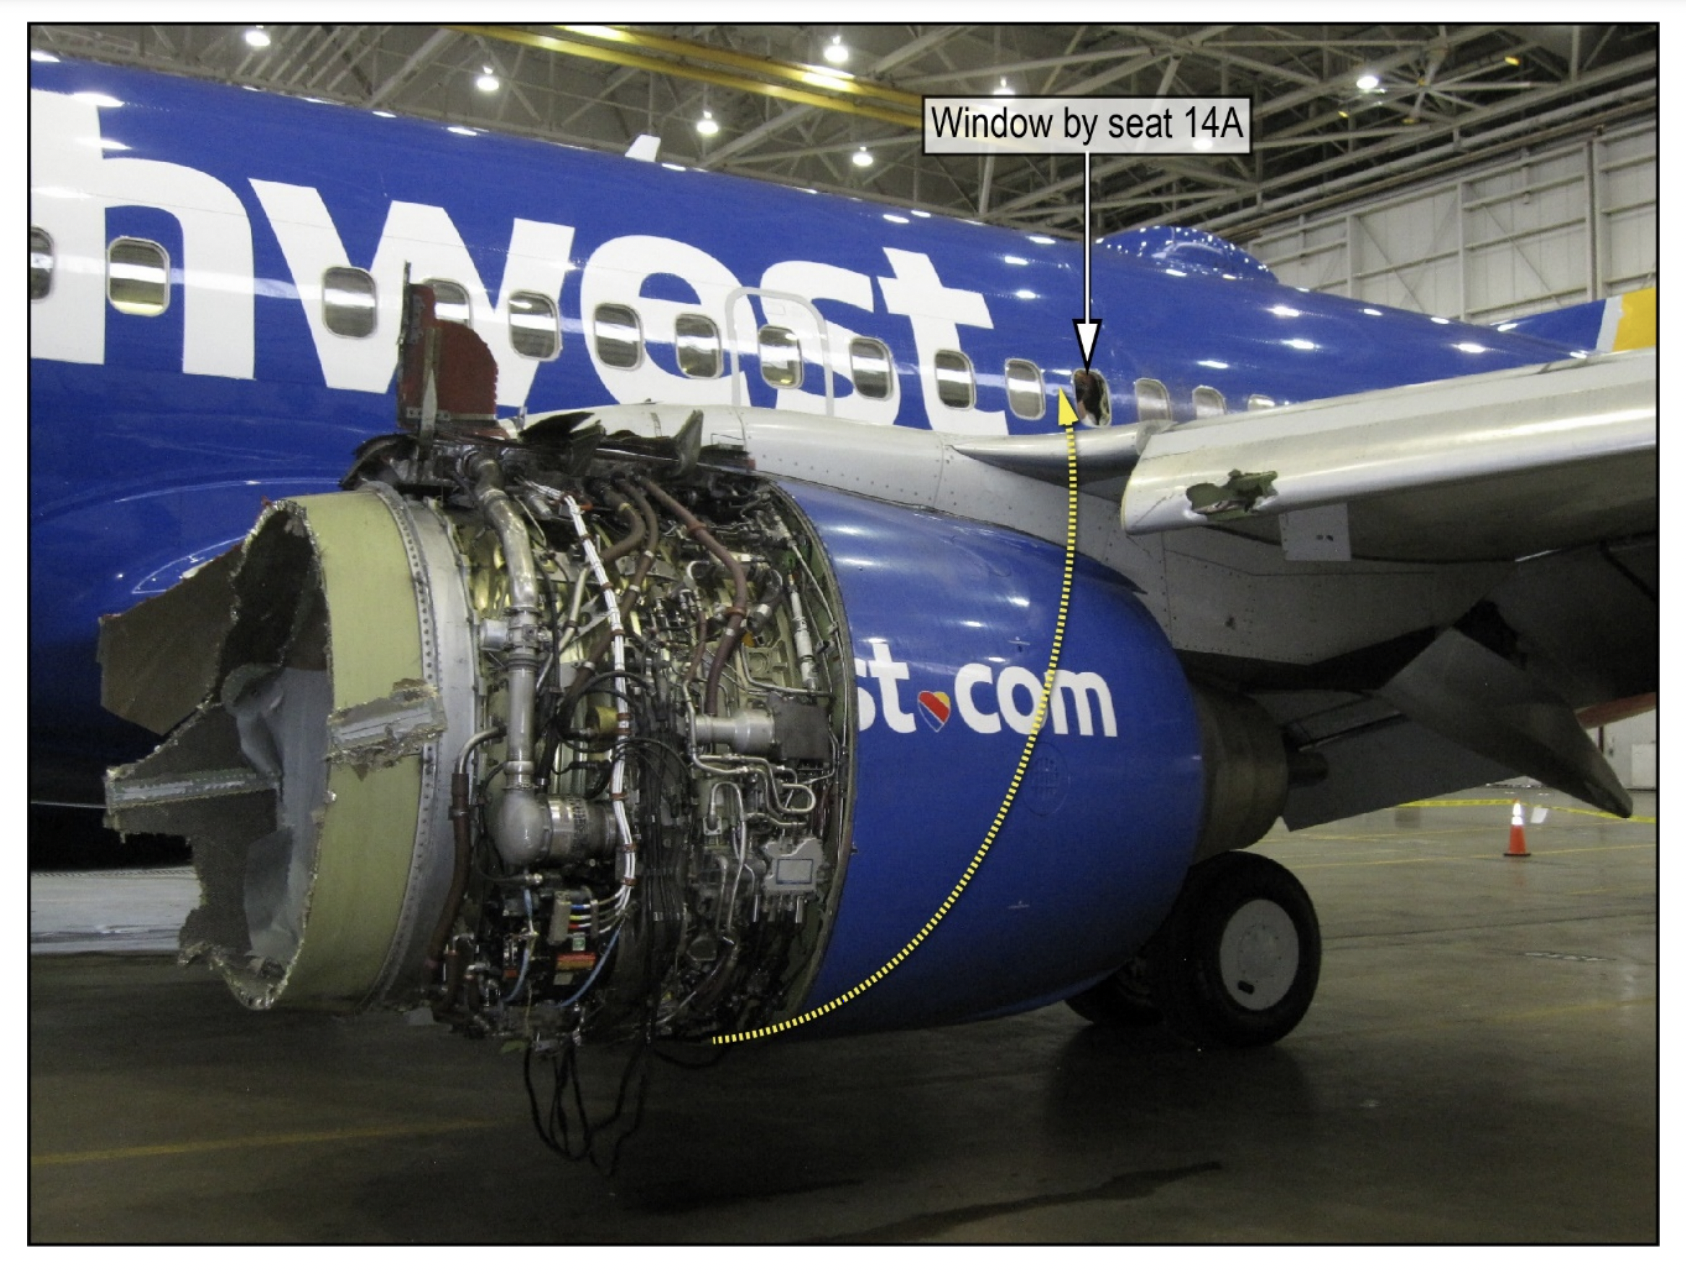 The NTSB's final report on Southwest 1380 detailed how the CFM56's engine fan blades and surrounding nacelle came apart.